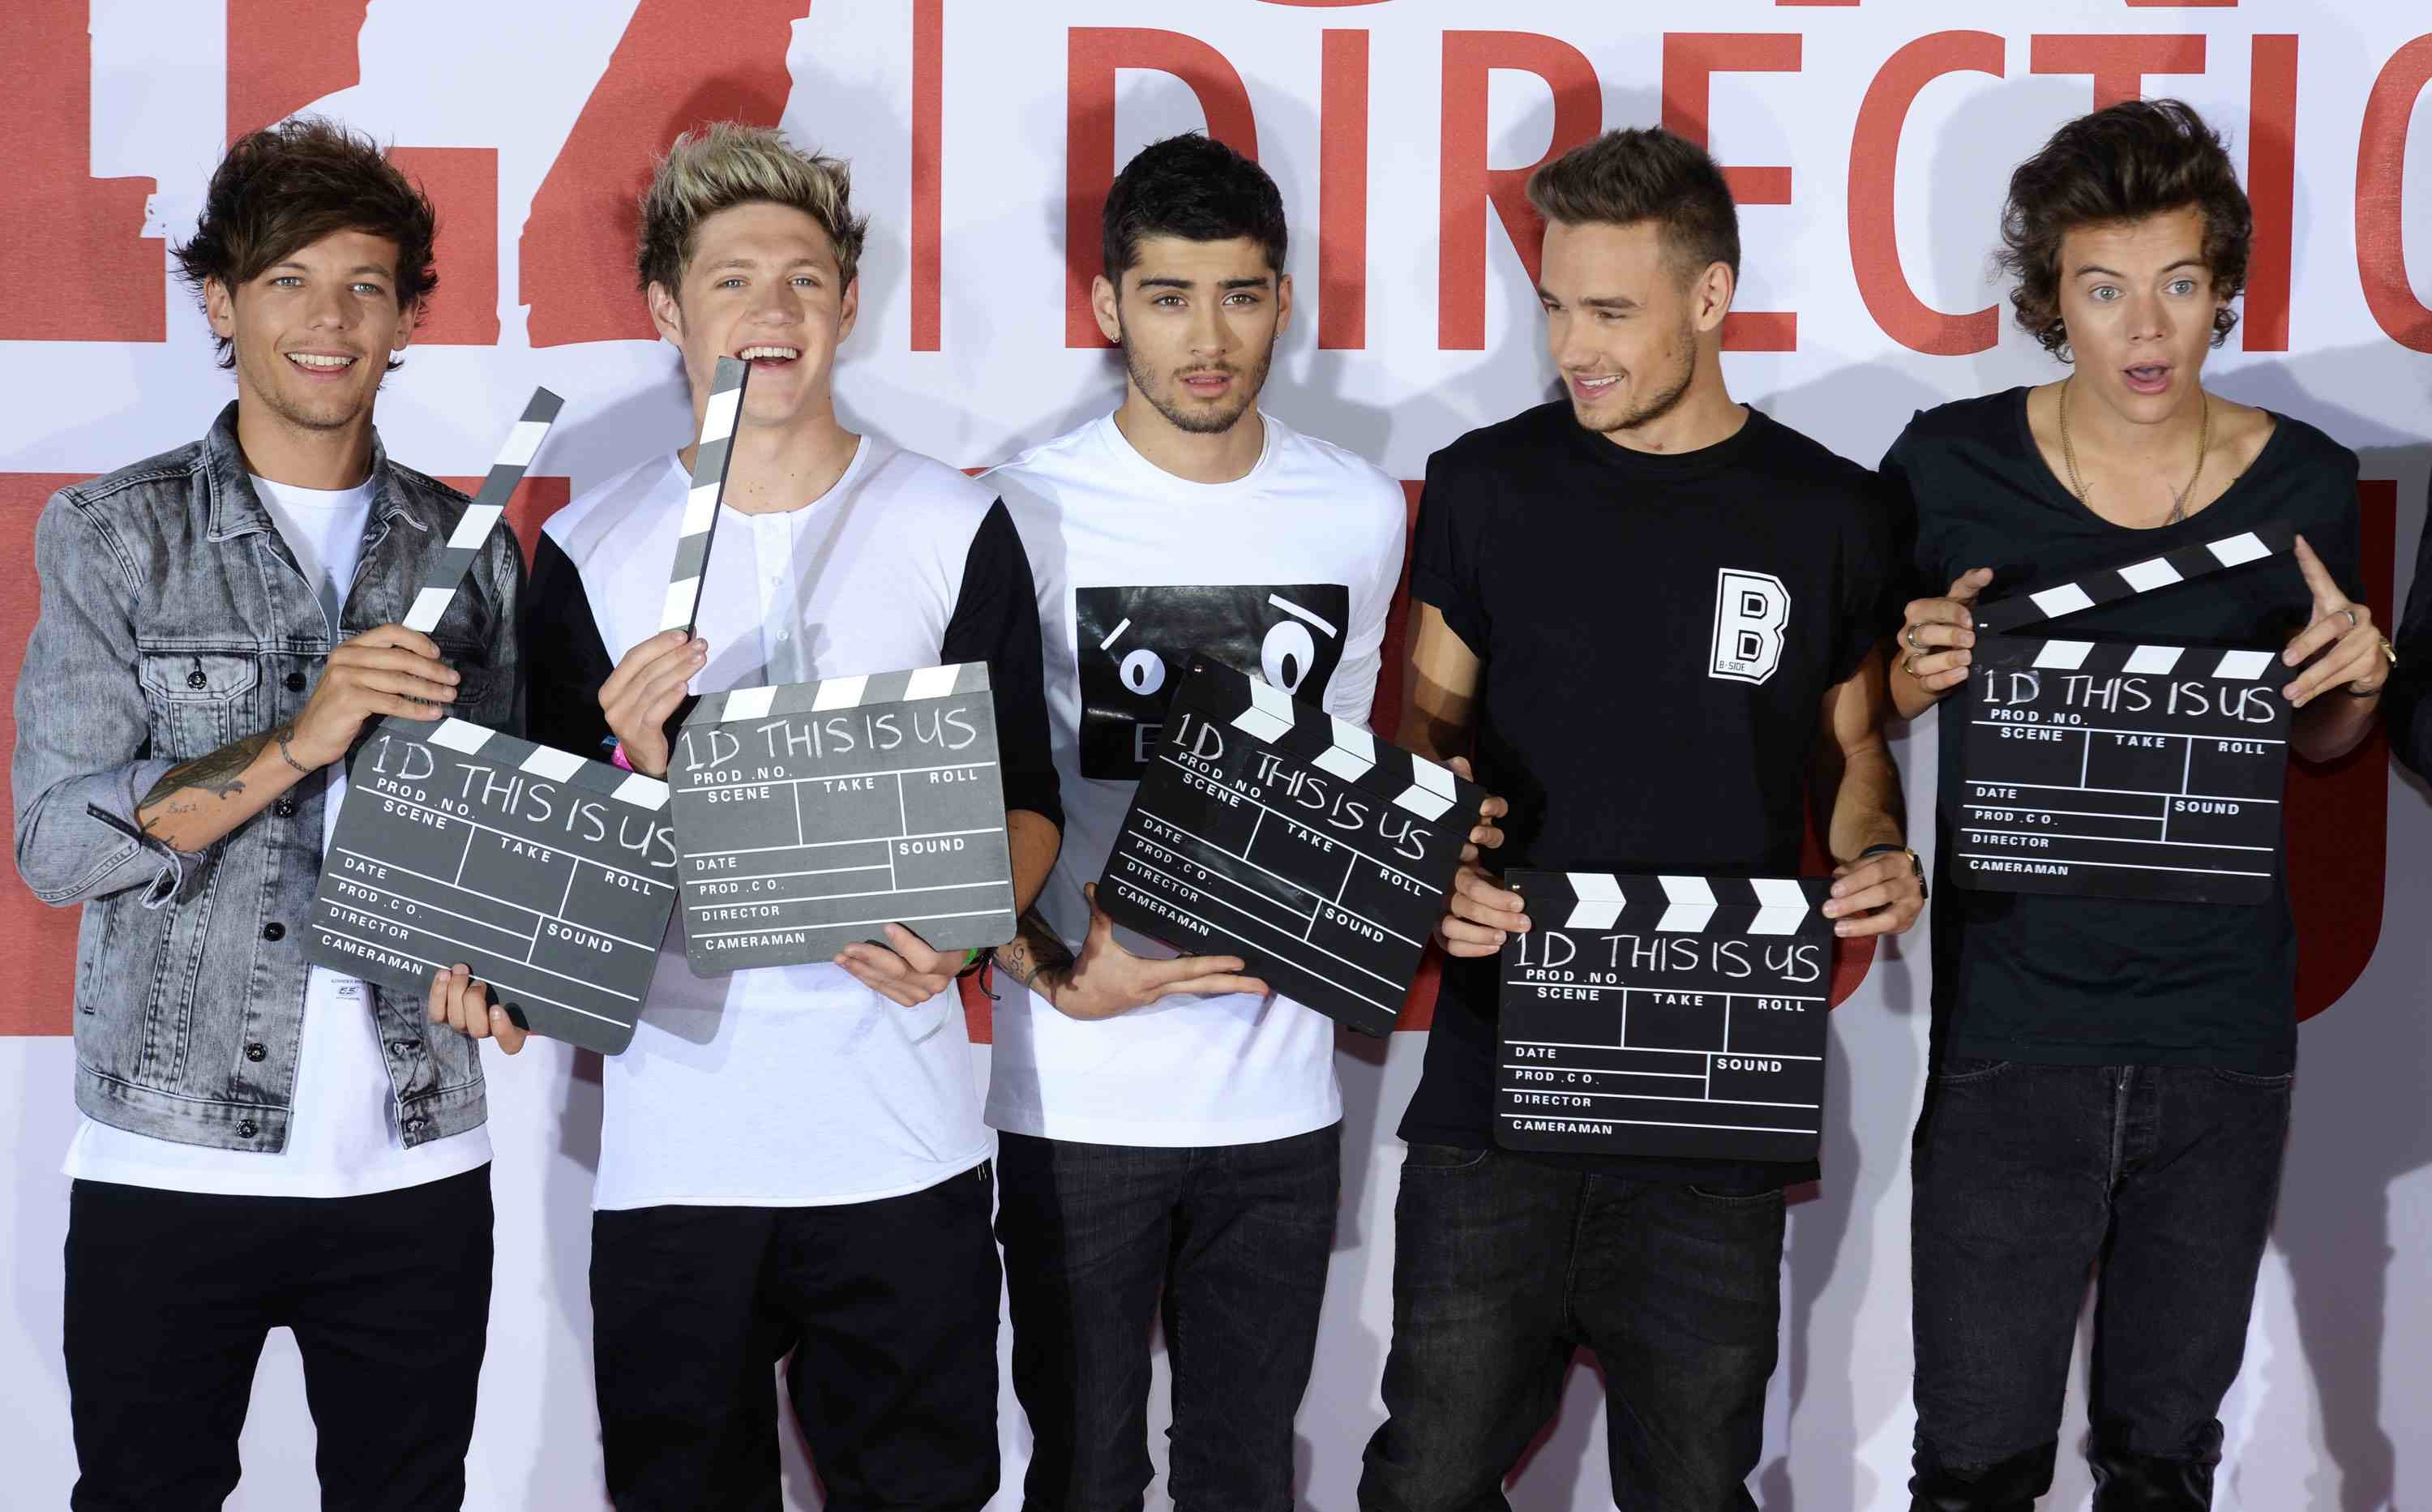 'One Direction – This Is Us' Photo Call And Press Conference